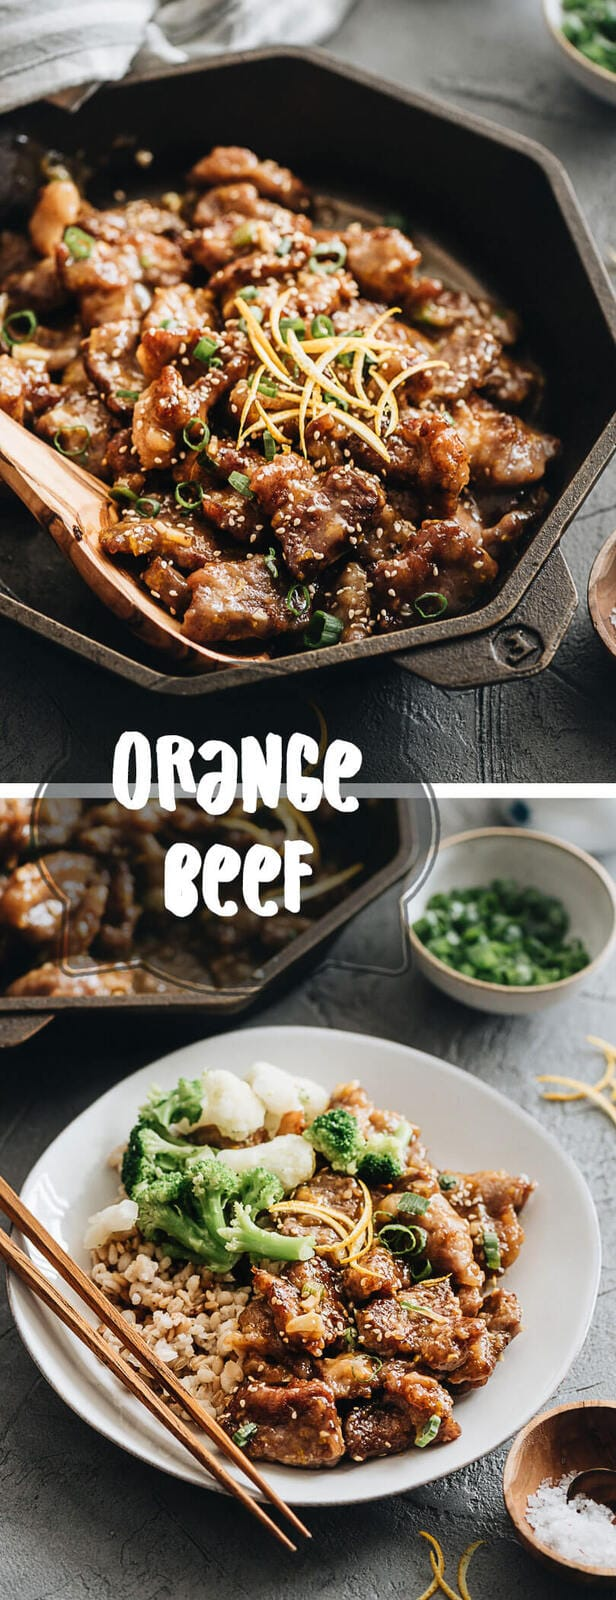 Create crispy, juicy, and tender restaurant-style orange beef using the cheapest cuts, and learn to make a super aromatic sauce that's tastier and healthier than takeout. #chinese #beef #recipes #glutenfree #takeout